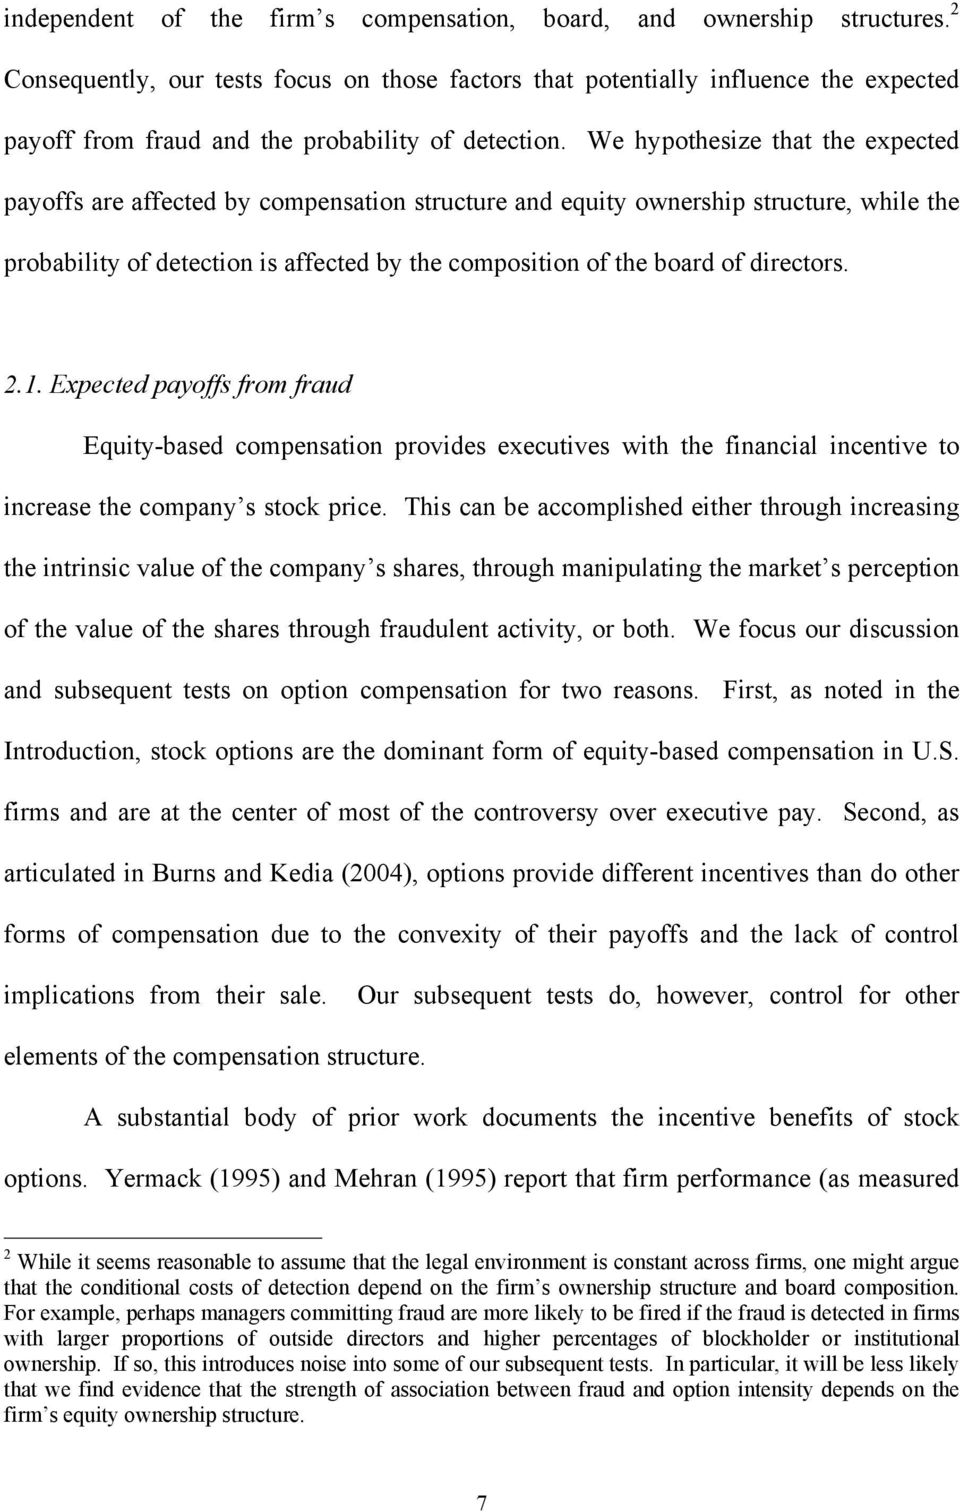 We hypothesize that the expected payoffs are affected by compensation structure and equity ownership structure, while the probability of detection is affected by the composition of the board of